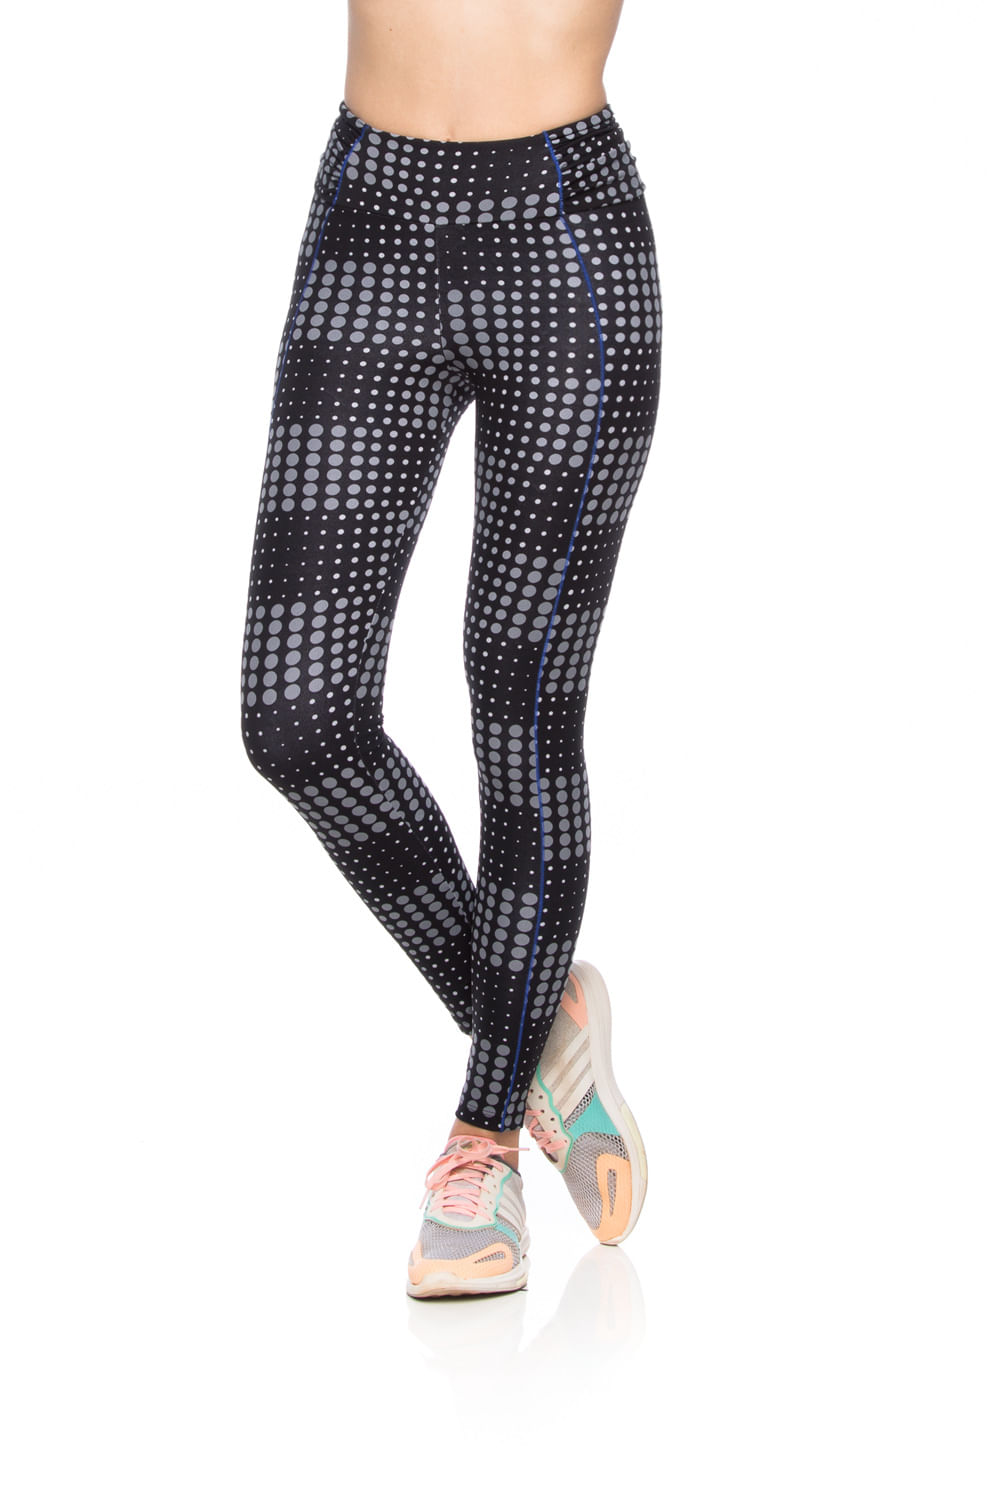 legging-fitness-cos-fit-estampada-moda-academia--1-